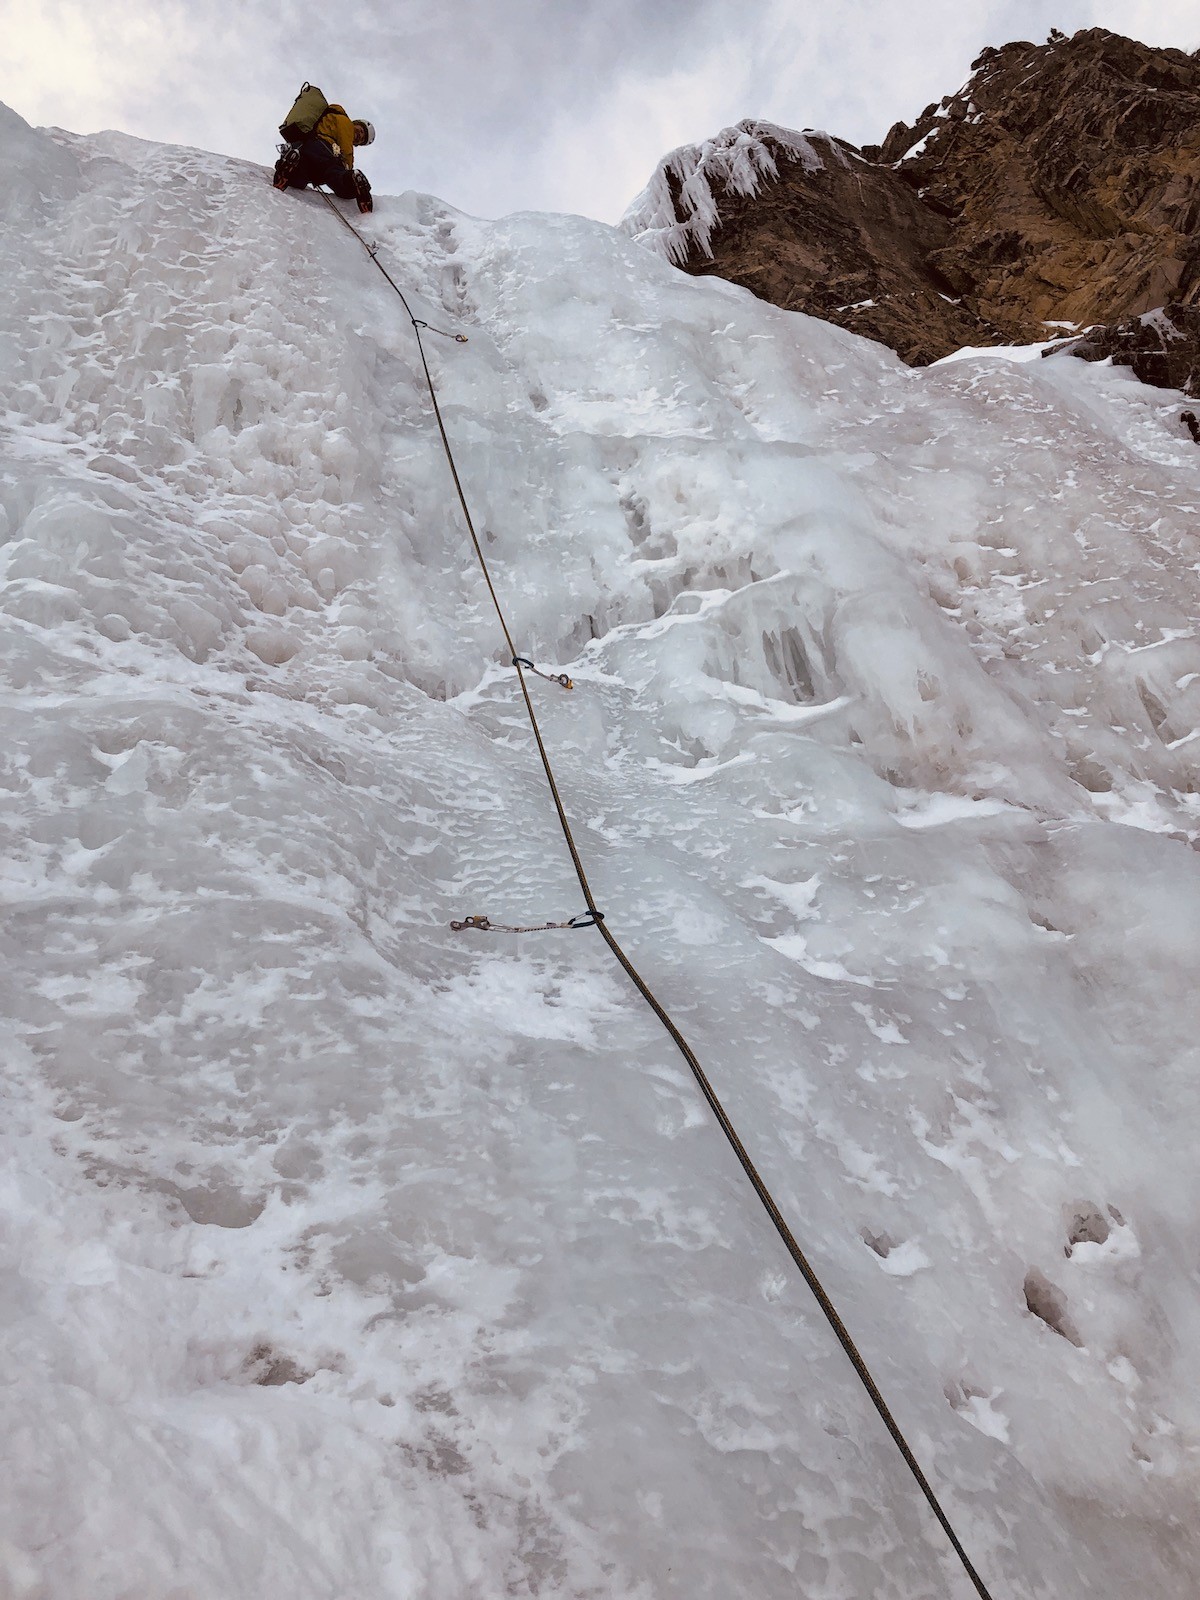 Cold, wet conditions with dry snow on the belay ledges made for tricky conditions—but Bruno Schull makes it look easy above Sertig, Switzerland. [Photo] Rob Coppolillo